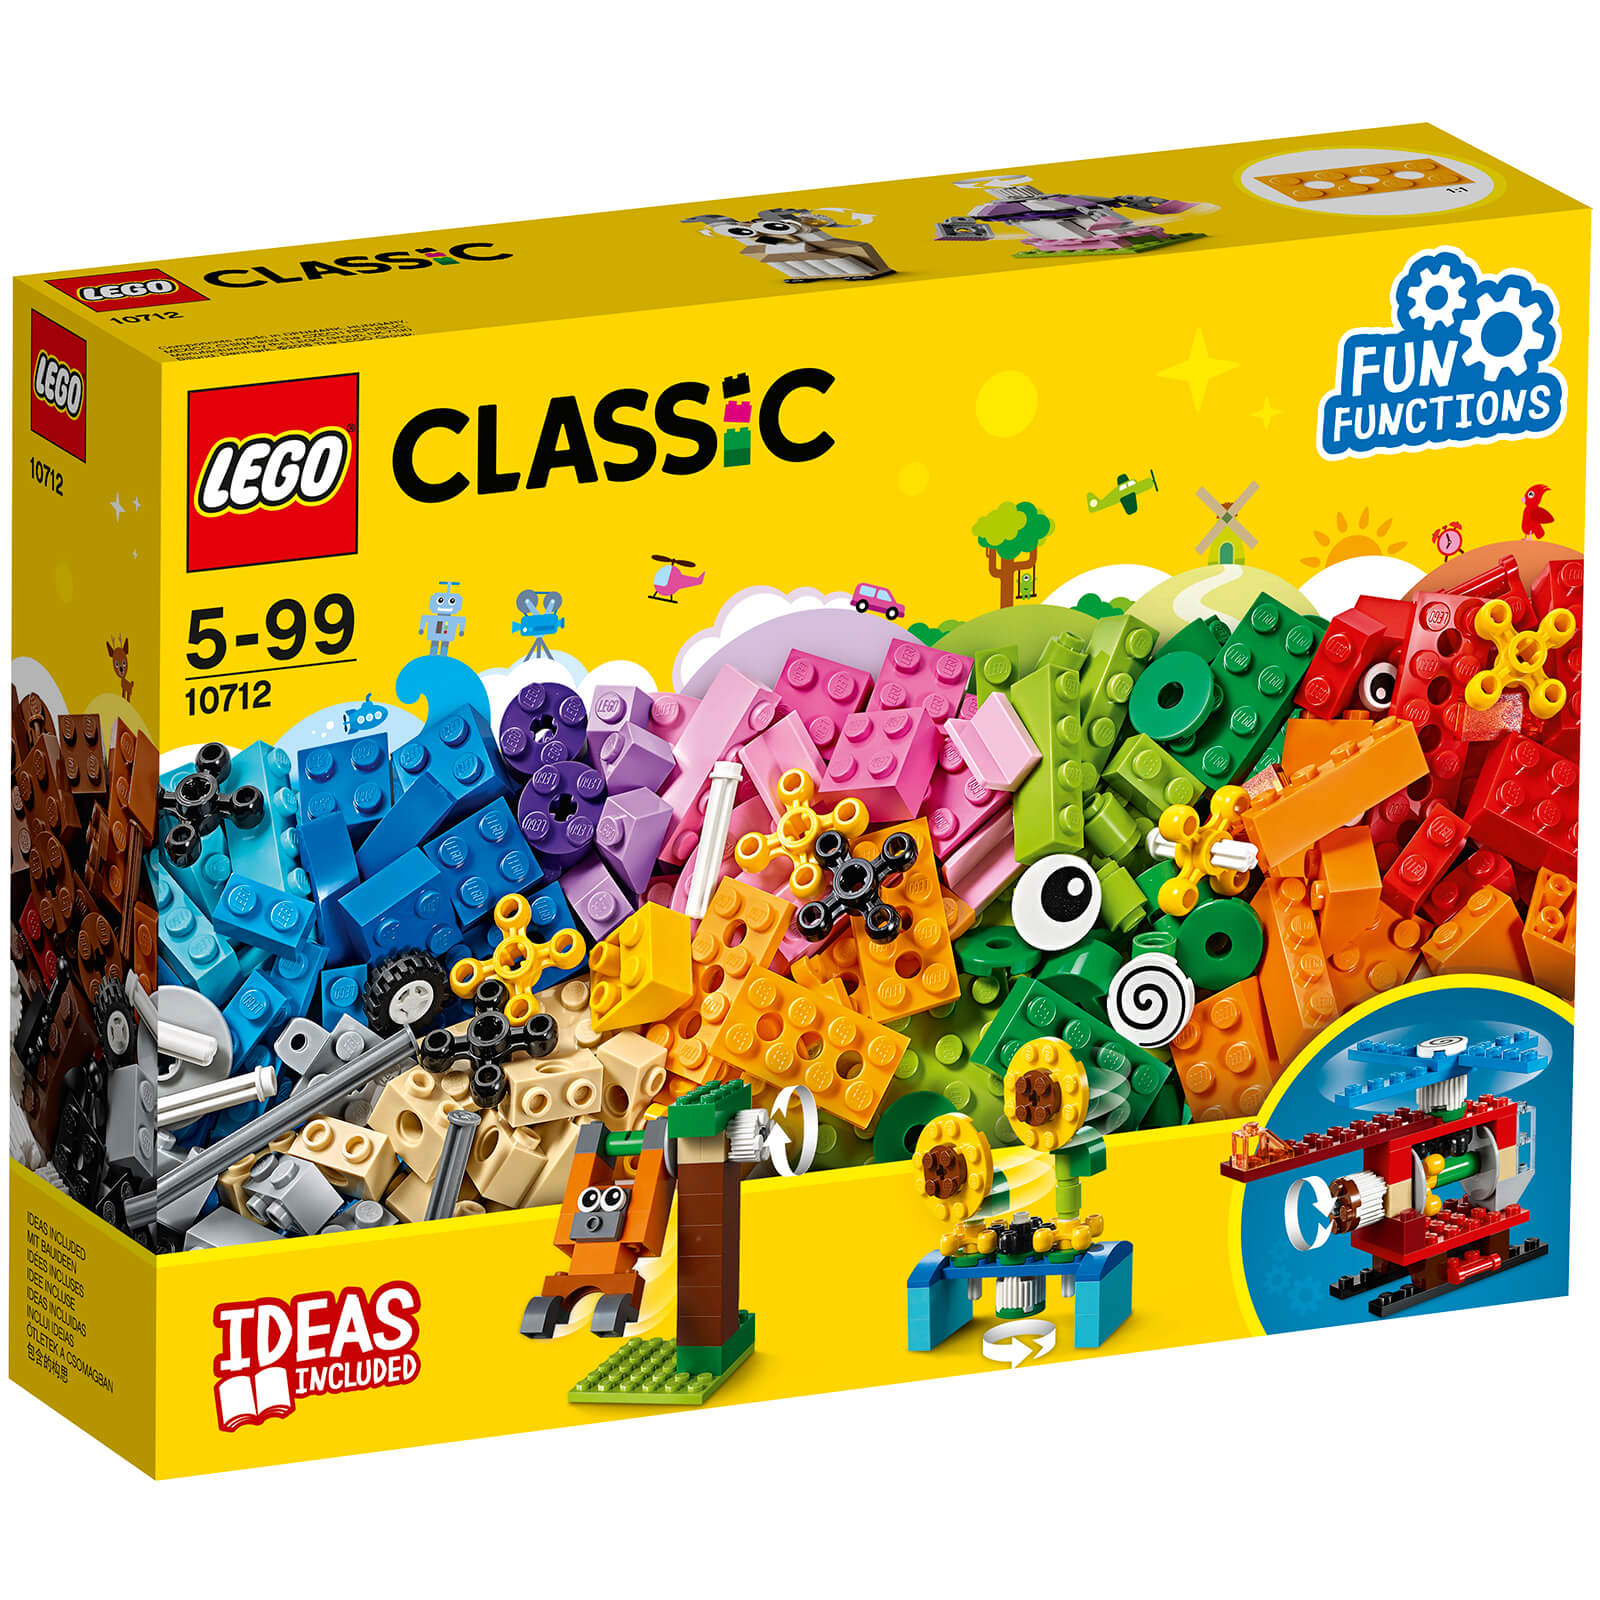 LEGO Classic: Bricks and Gears (10712)